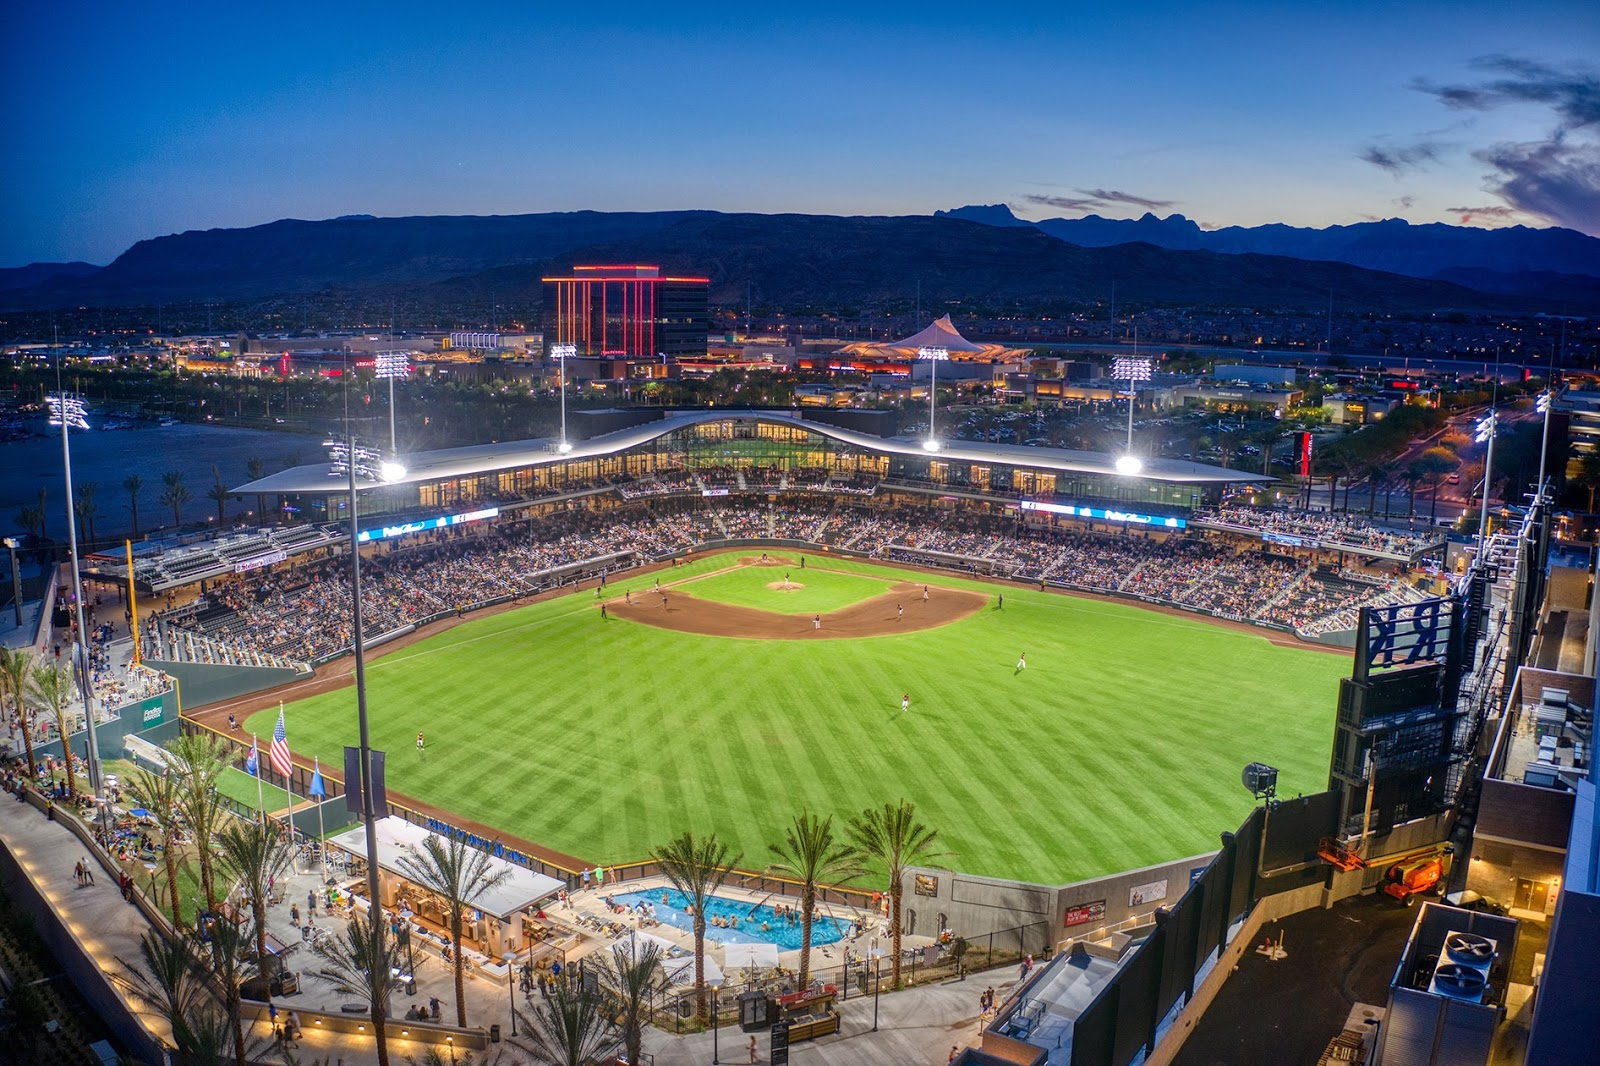 an aerial photo of the Las Vegas Ballpark at sunset. A large hotel and events center can be seen in the background as the sun sets behind the mountains. The stadium is filled with fans as the Las Vegas Aviators, Las Vegas' minor league baseball team, takes the field.